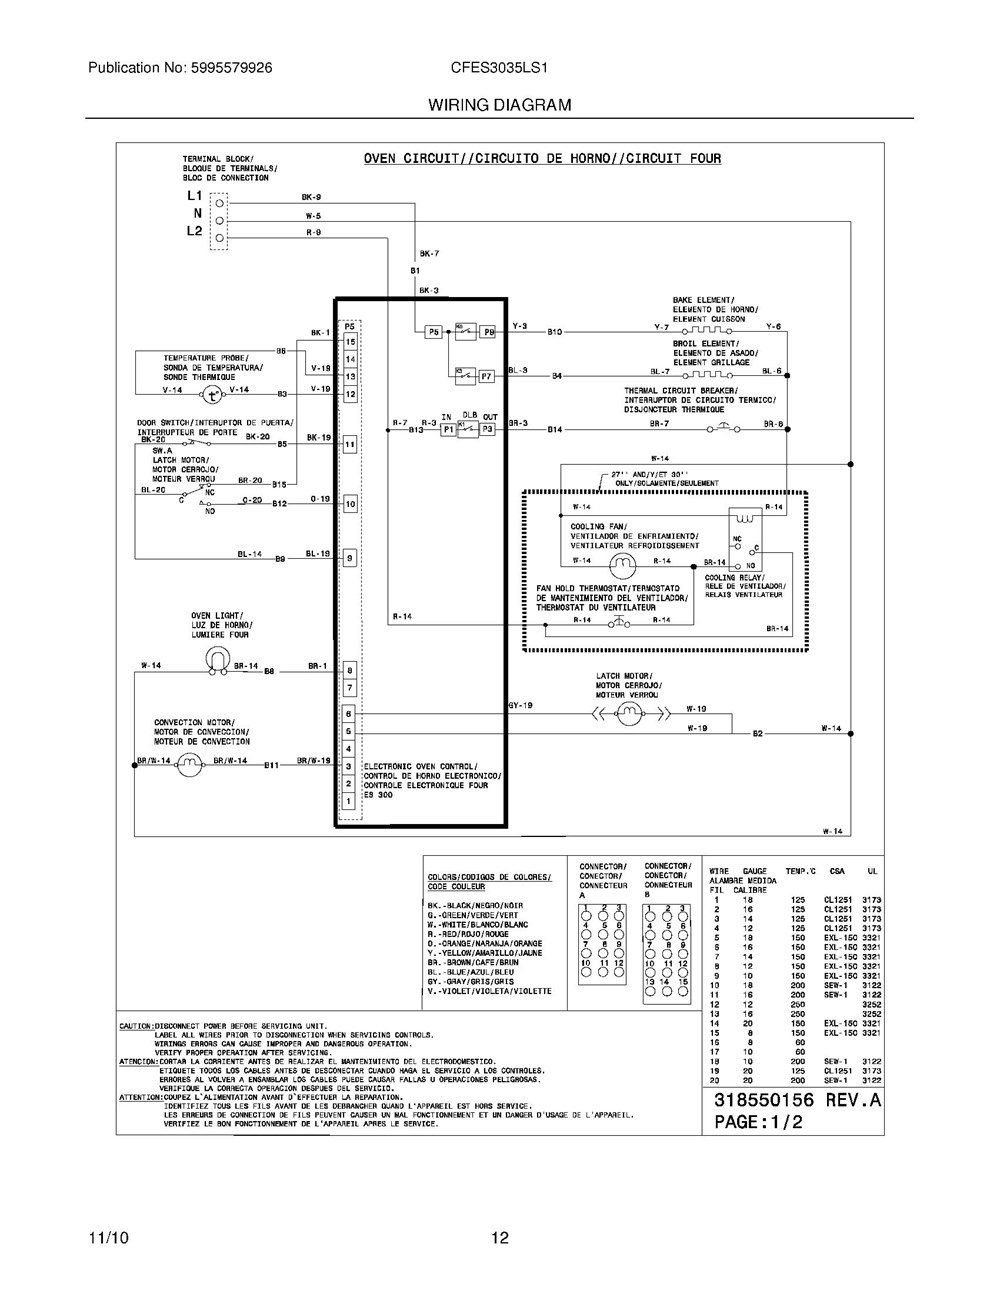 Cfes3035ls1 Frigidaire Company Appliance Parts Backguard 05body 07top Drawer 09door 01cover 10wiring Diagram